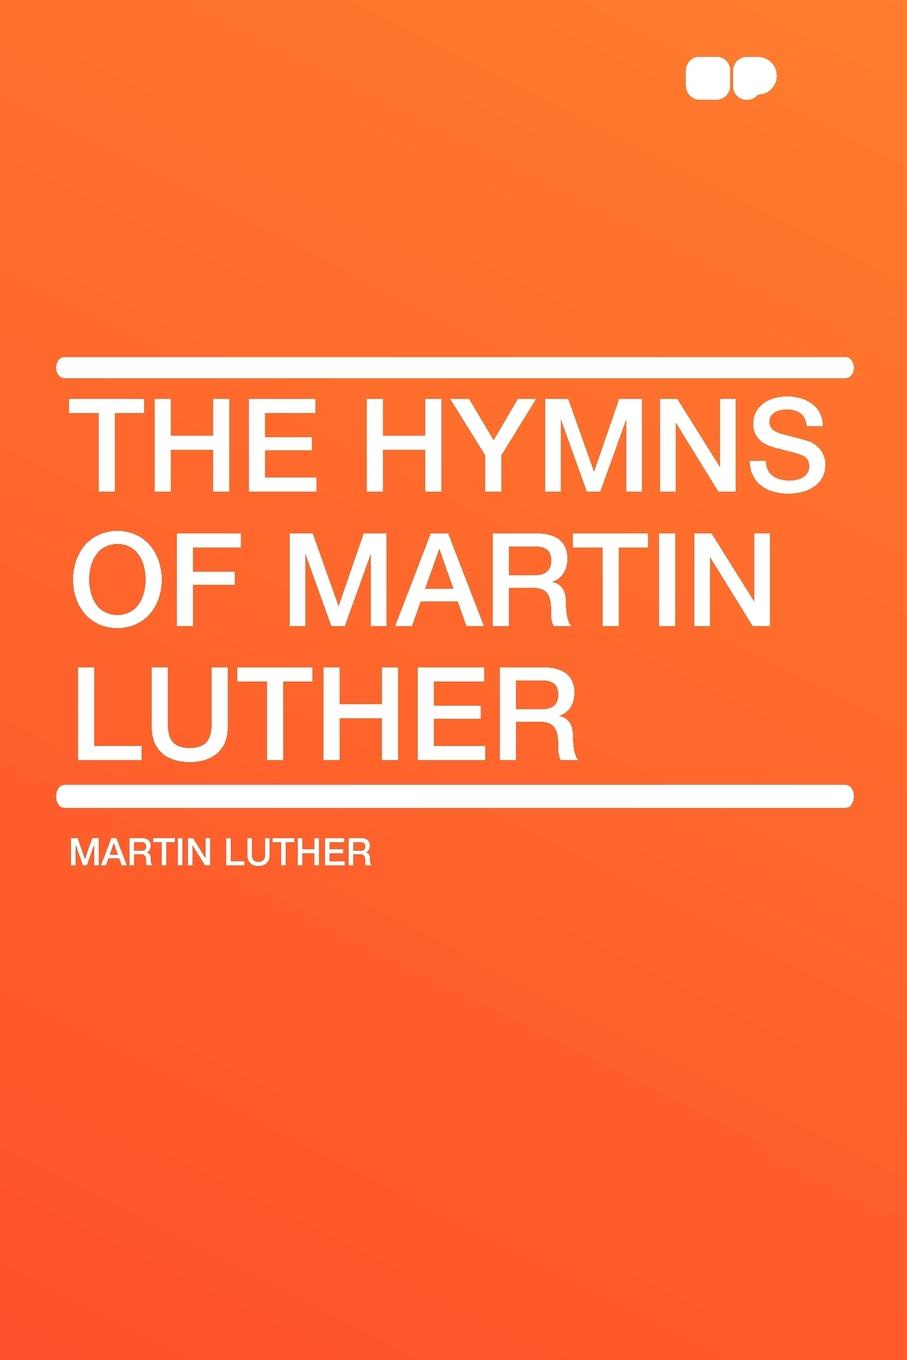 Martin Luther The Hymns of